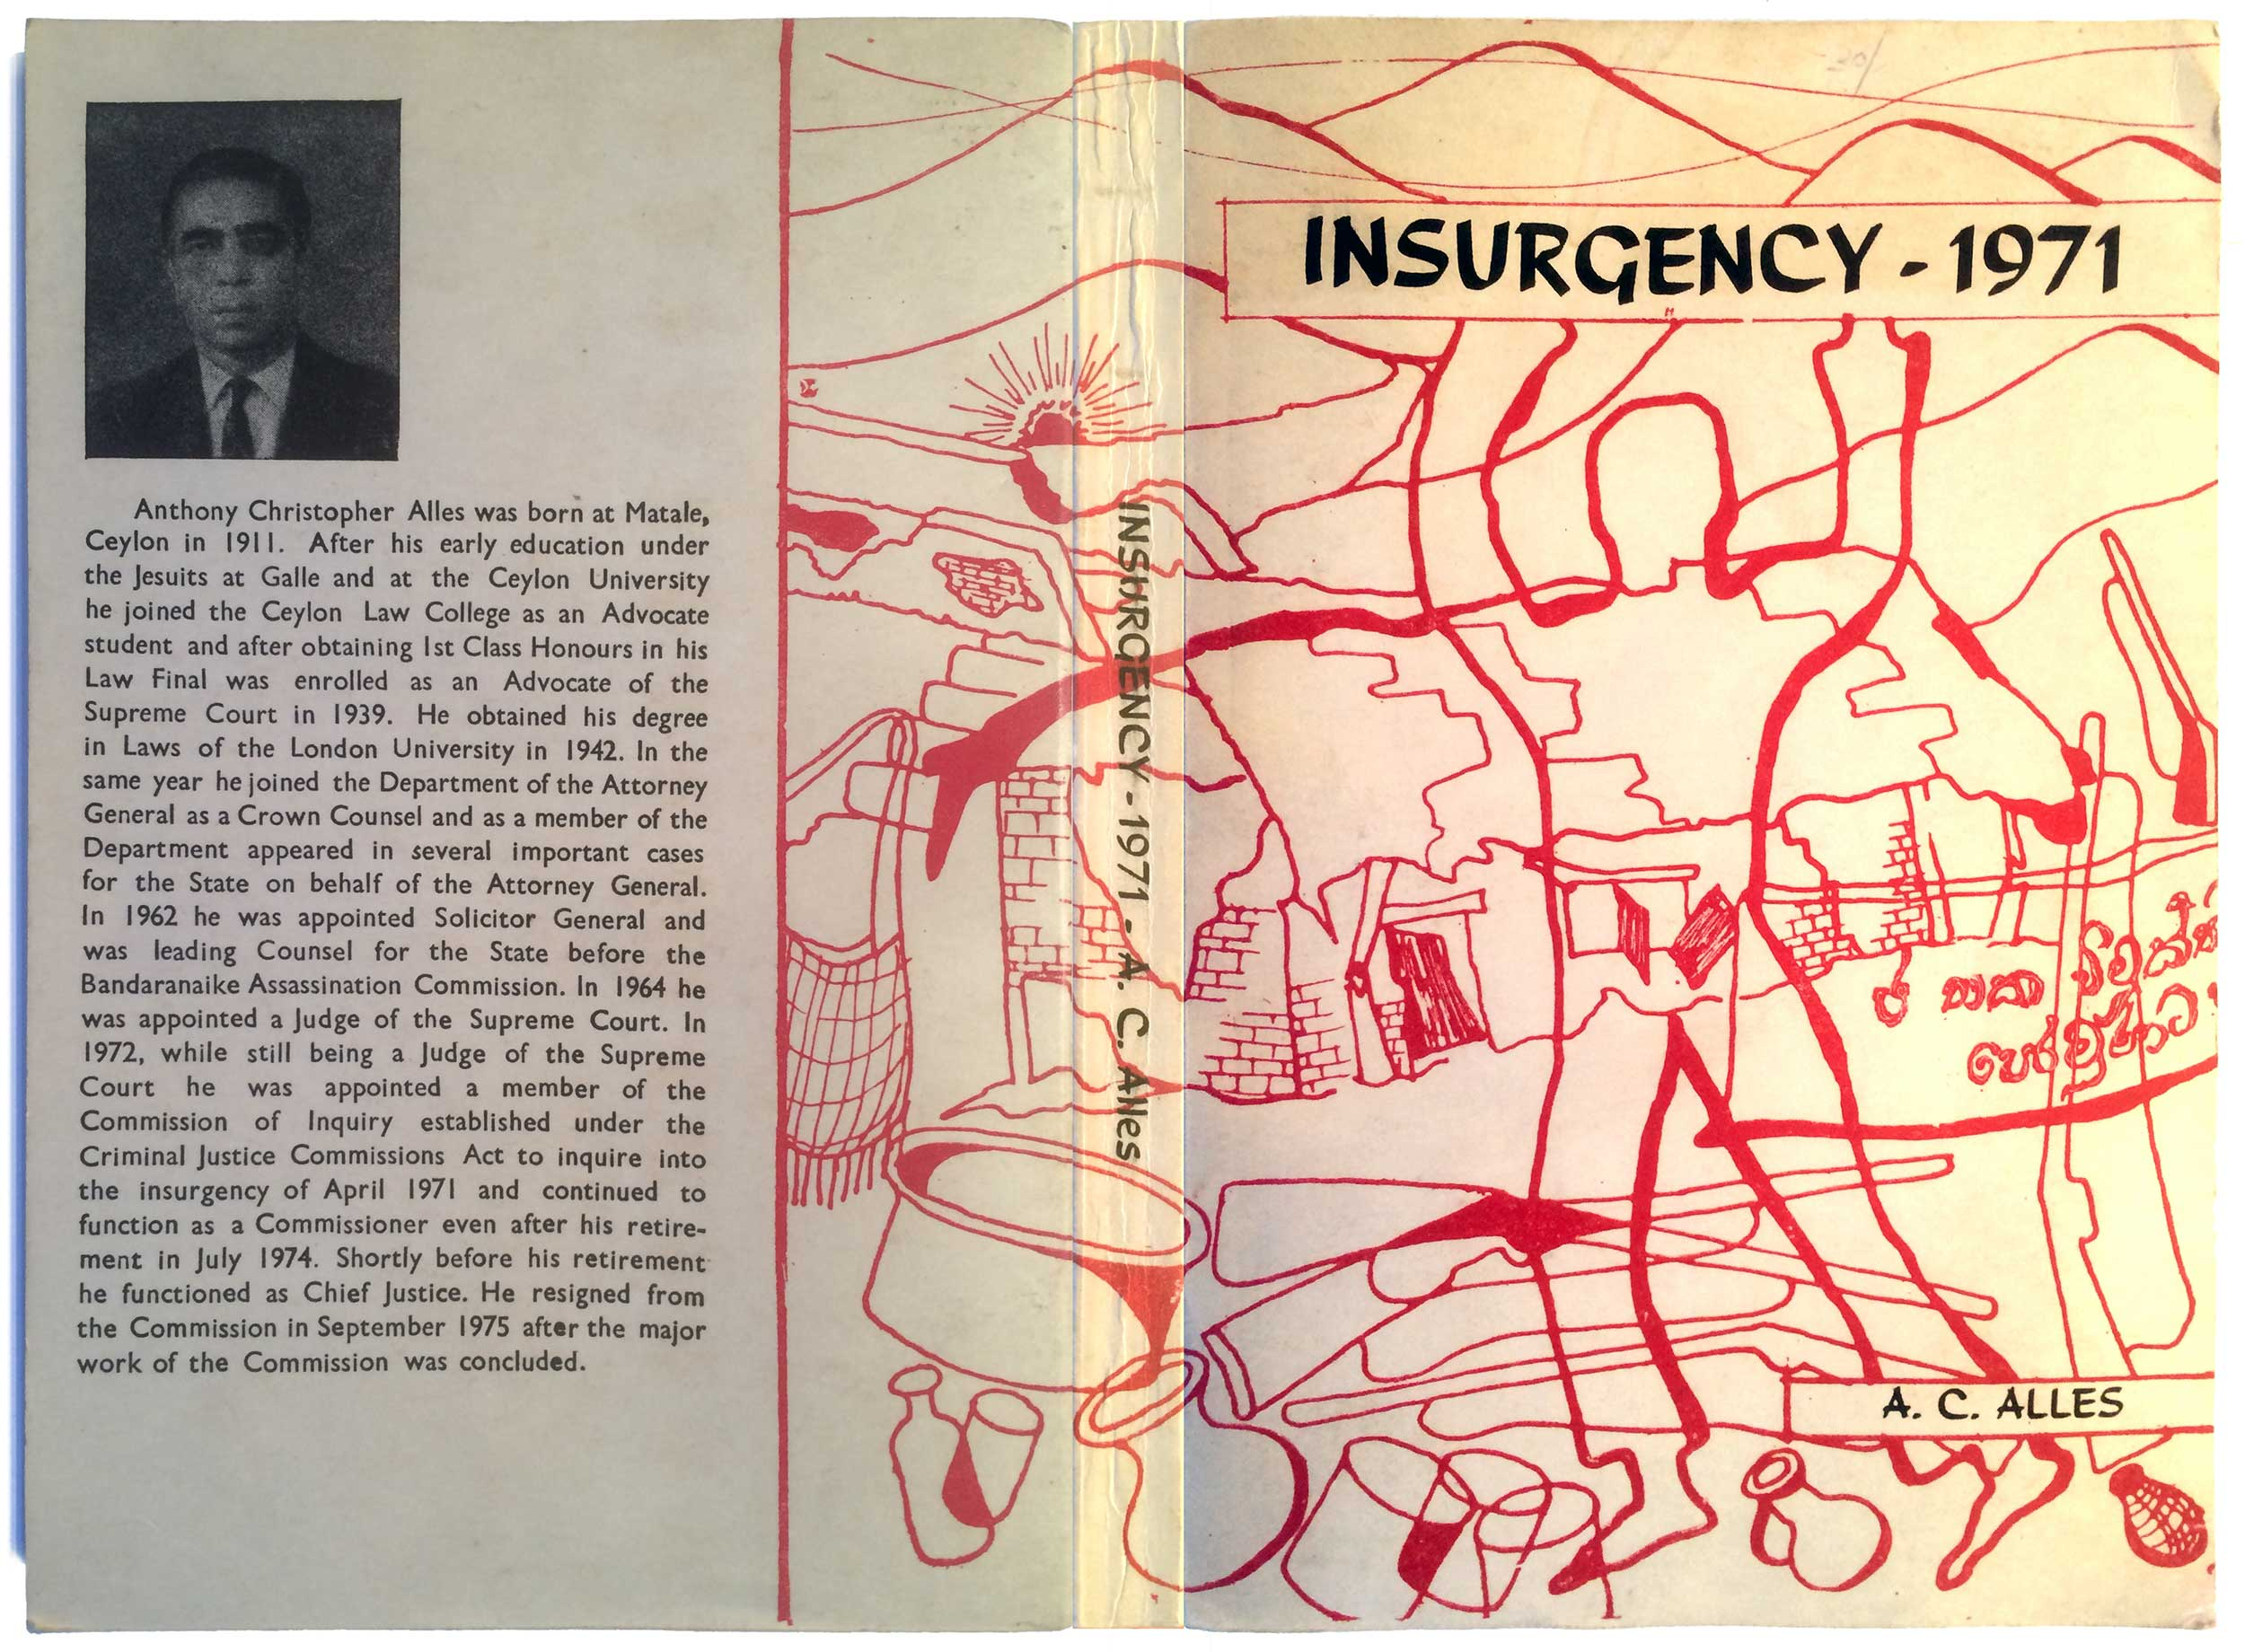 Alles_Insurgency71_full